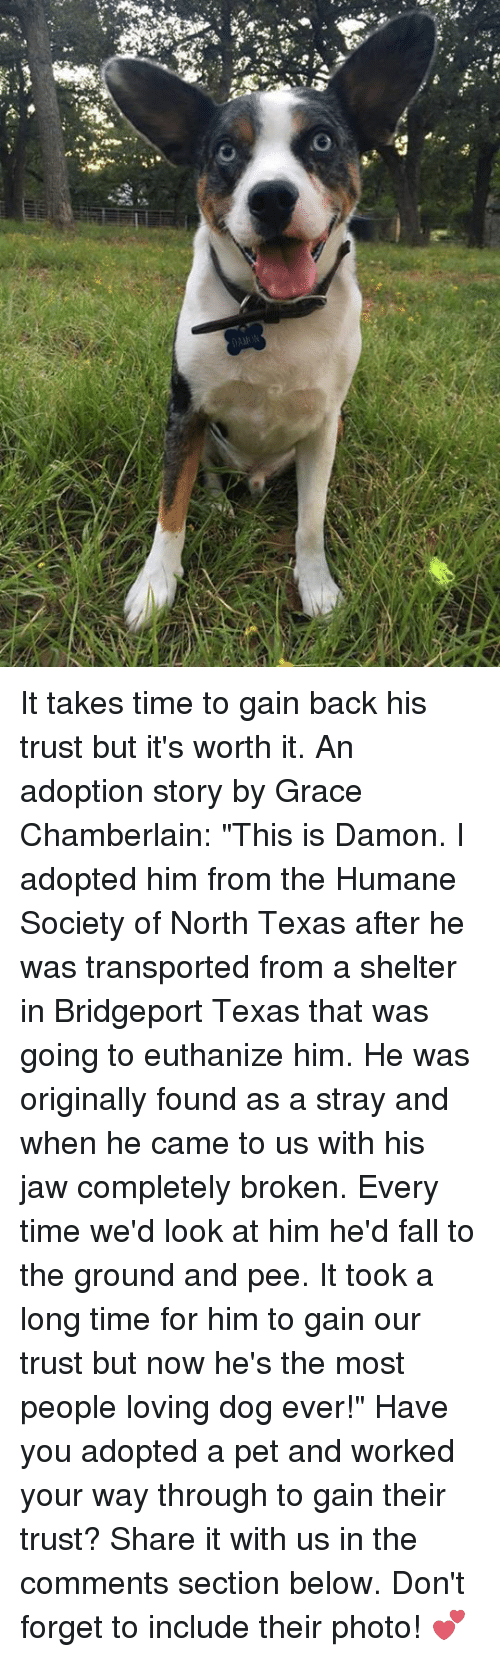 """Memes, Humane Society, and Texas: 鬼  4펀、 19 .  Y It takes time to gain back his trust but it's worth it. An adoption story by Grace Chamberlain:  """"This is Damon. I adopted him from the Humane Society of North Texas after he was transported from a shelter in Bridgeport Texas that was going to euthanize him. He was originally found as a stray and when he came to us with his jaw completely broken. Every time we'd look at him he'd fall to the ground and pee. It took a long time for him to gain our trust but now he's the most people loving dog ever!""""  Have you adopted a pet and worked your way through to gain their trust? Share it with us in the comments section below. Don't forget to include their photo! 💕"""